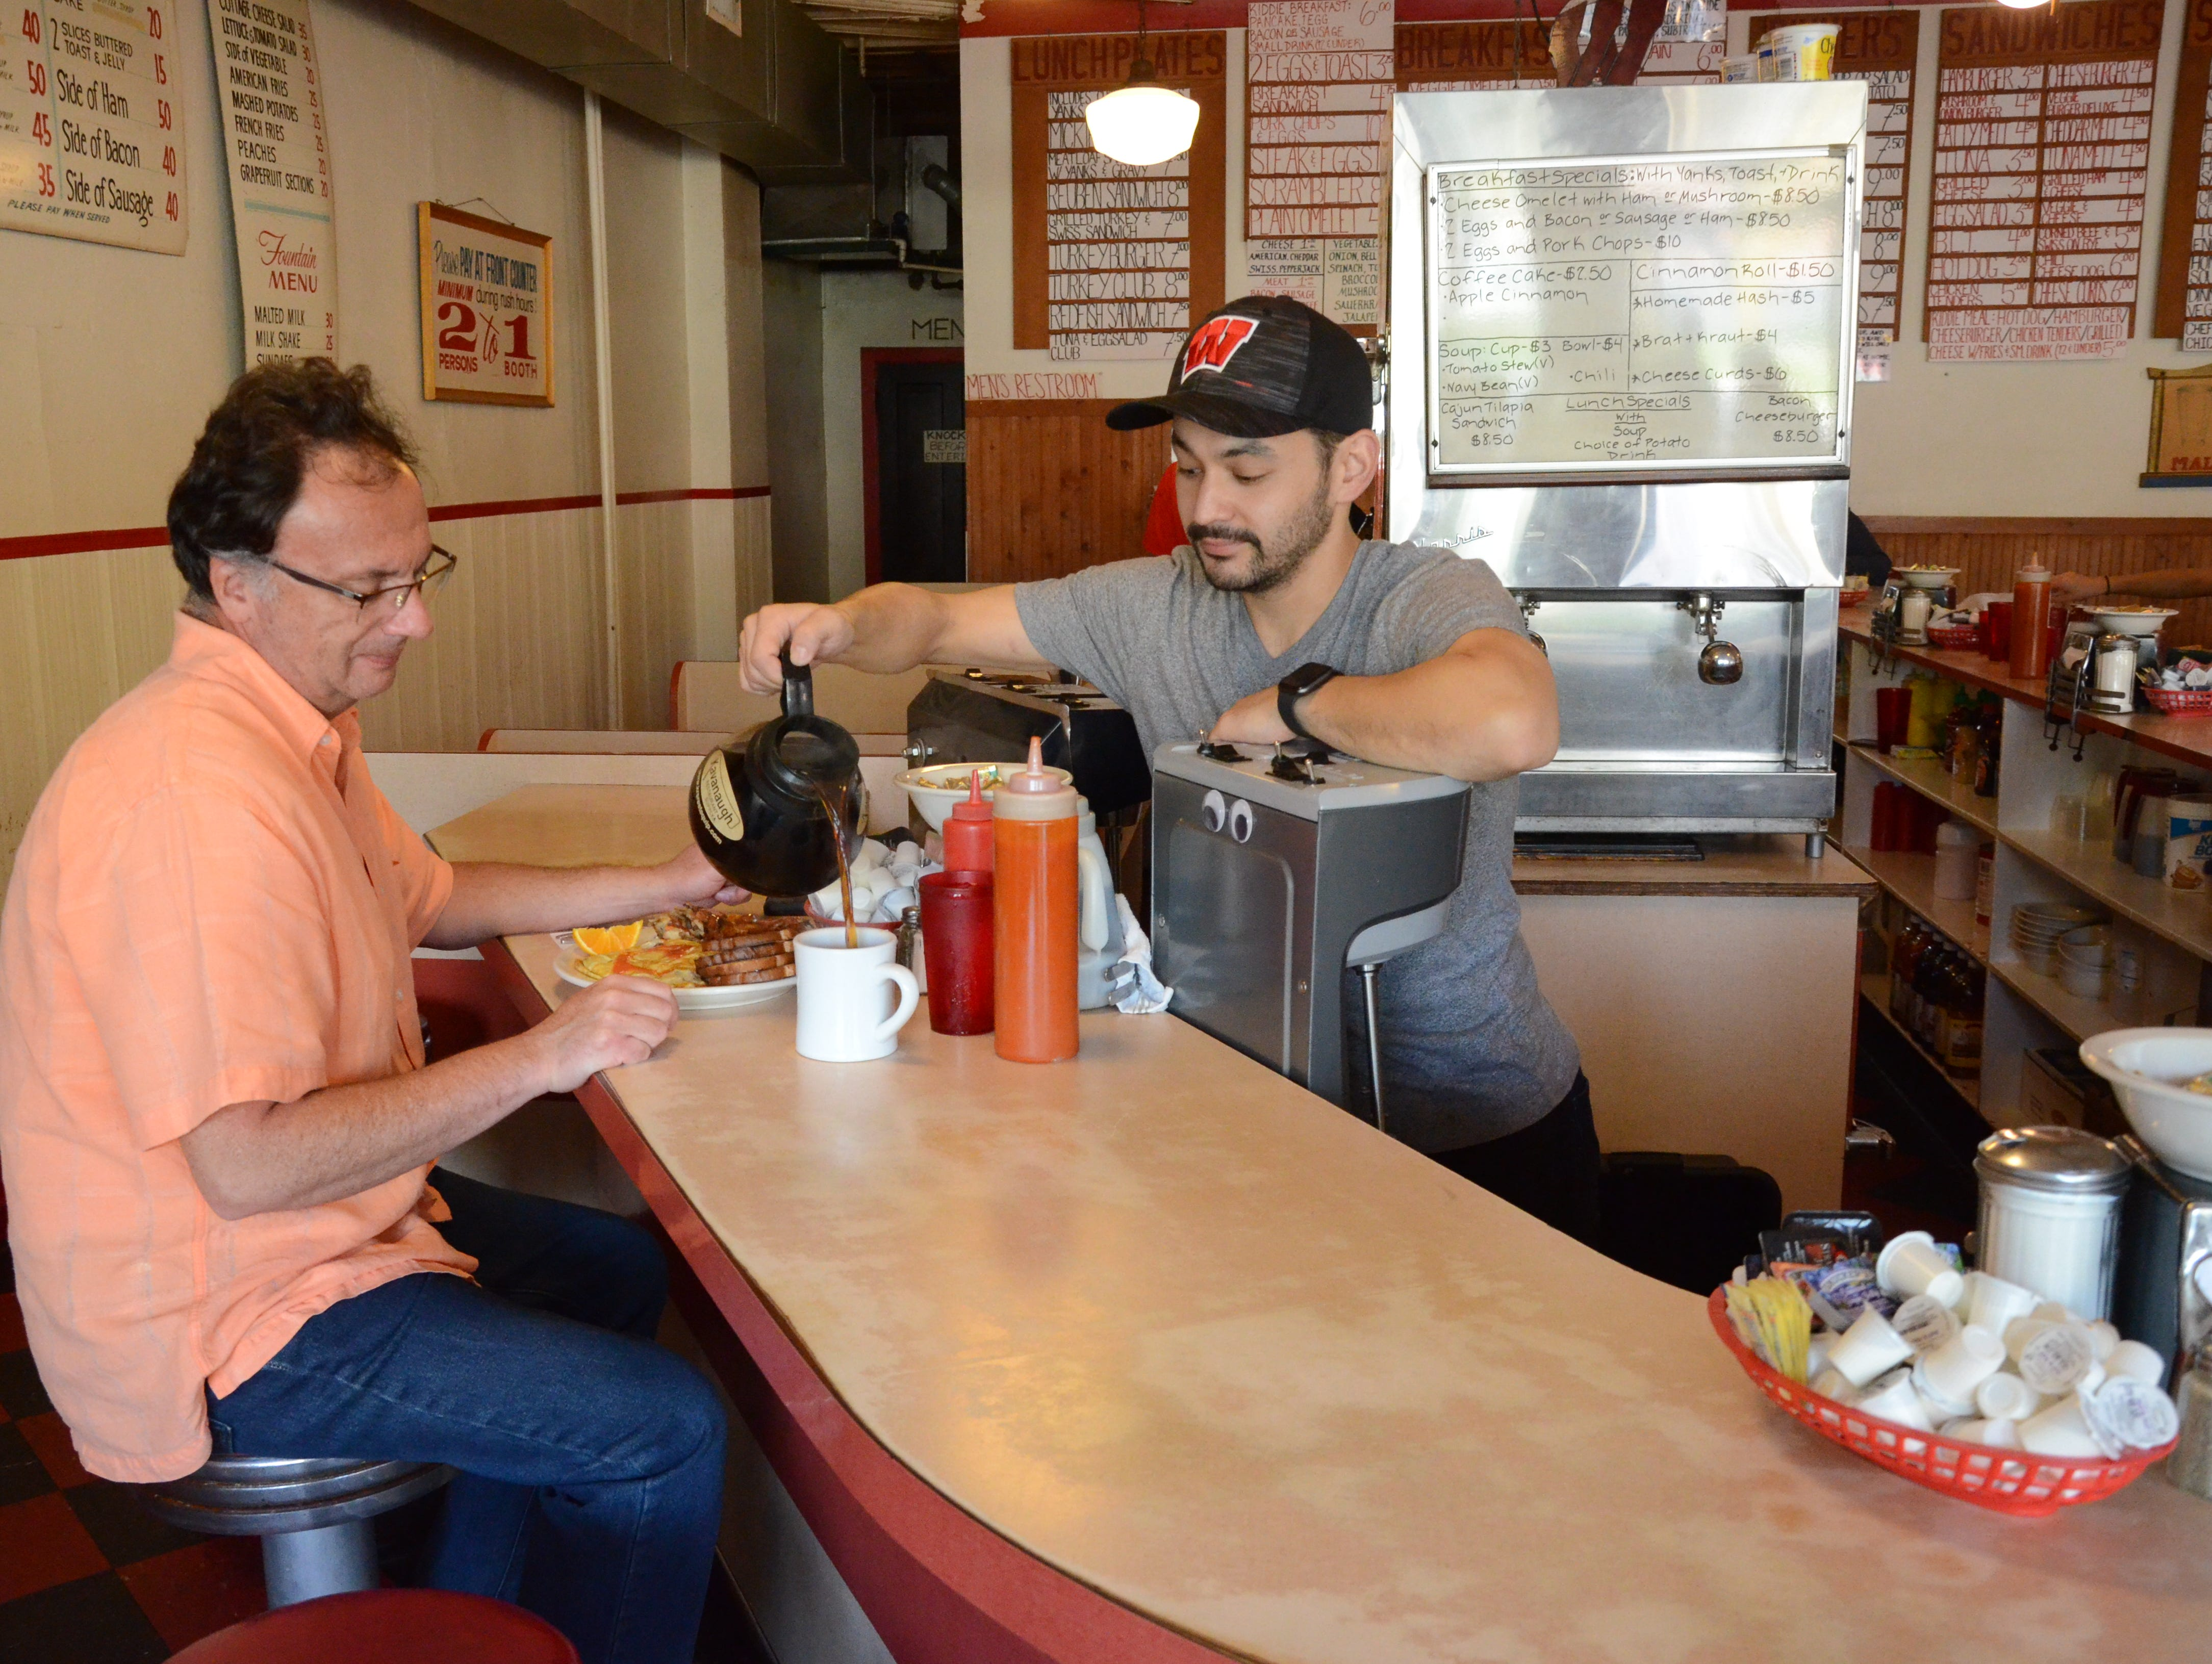 Mickies Dairy Bar in Madison has been serving comfort food to students and alums since 1946.